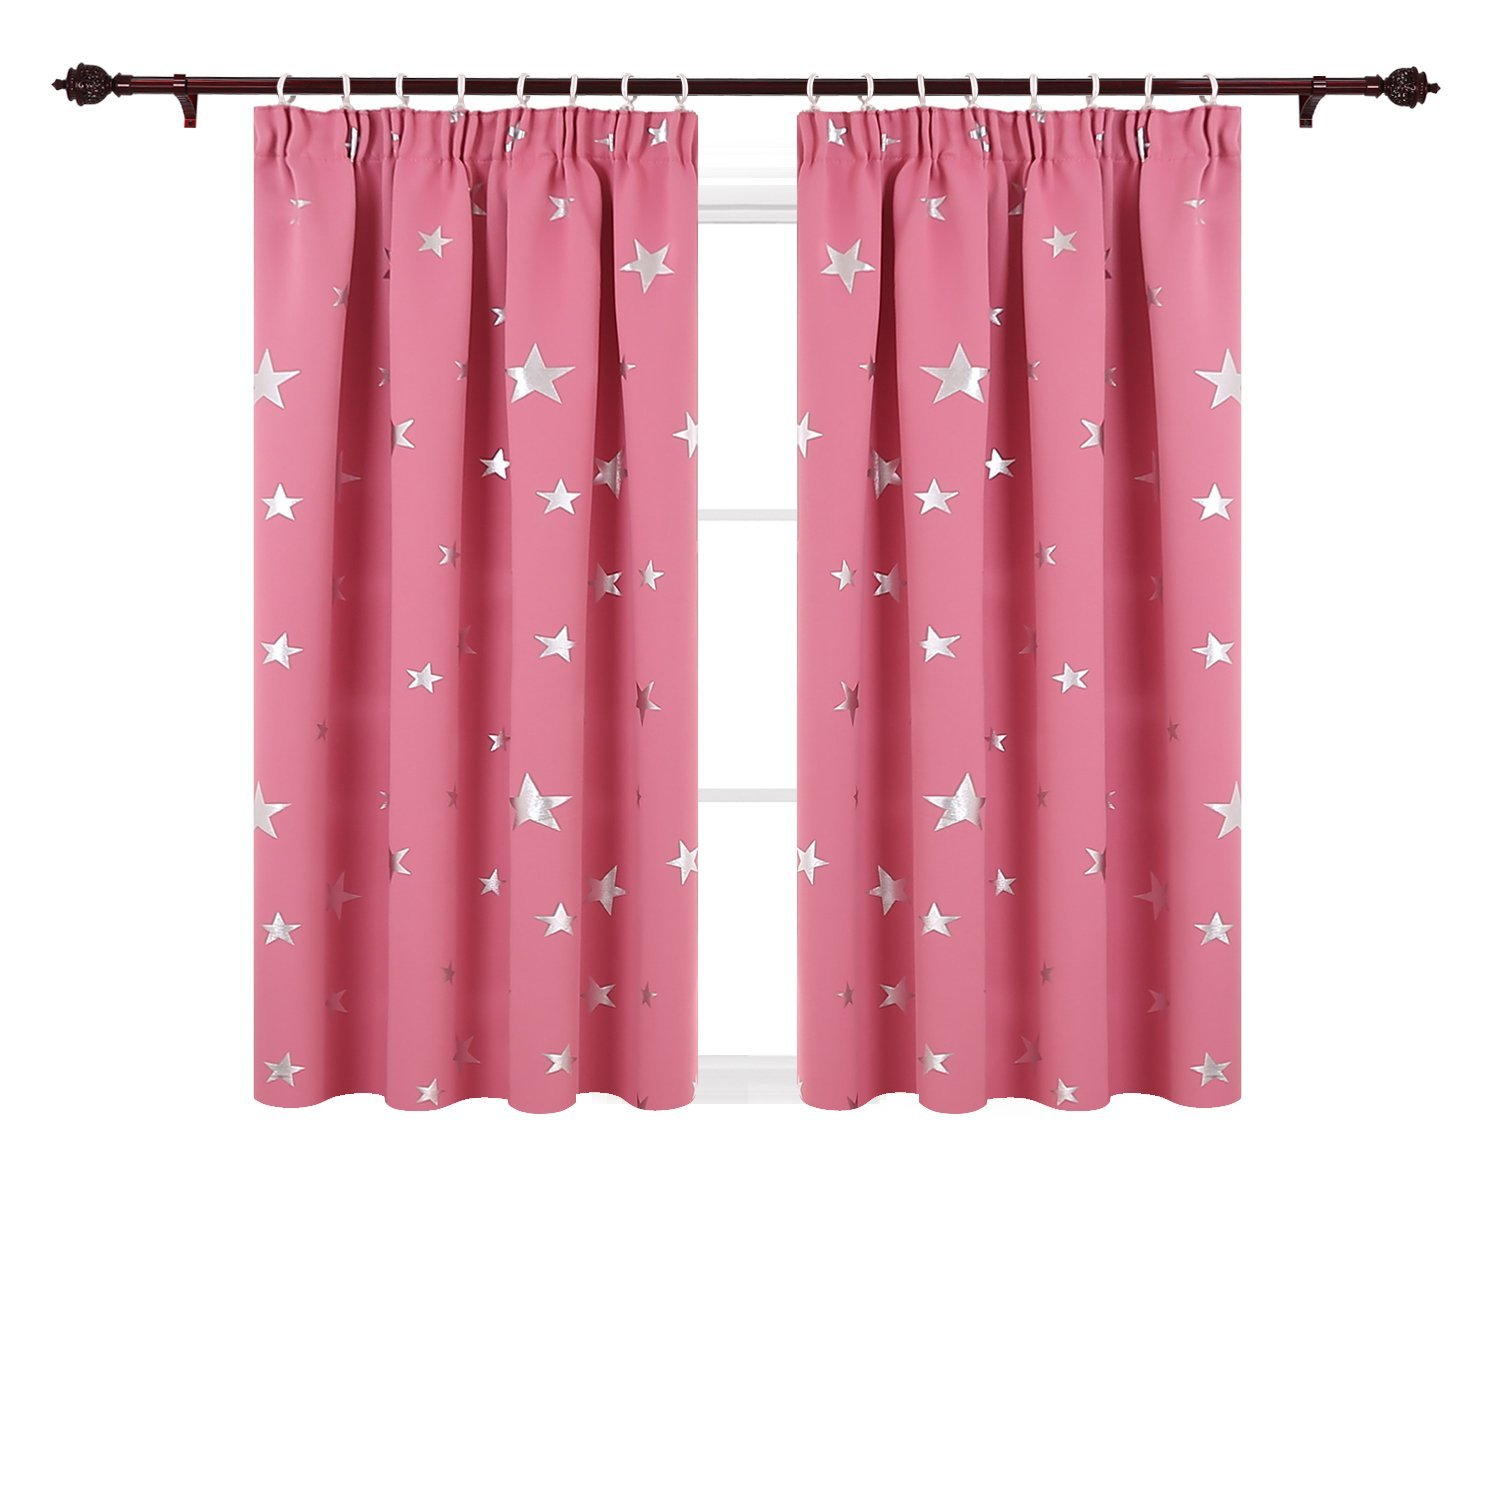 Deconovo Super Soft Thermal Insulated Pencil Pleat Star Printed Blackout Curtains for Nursery with Two Matching Tie Backs 46 x 54 Inch Blue 2 Panels